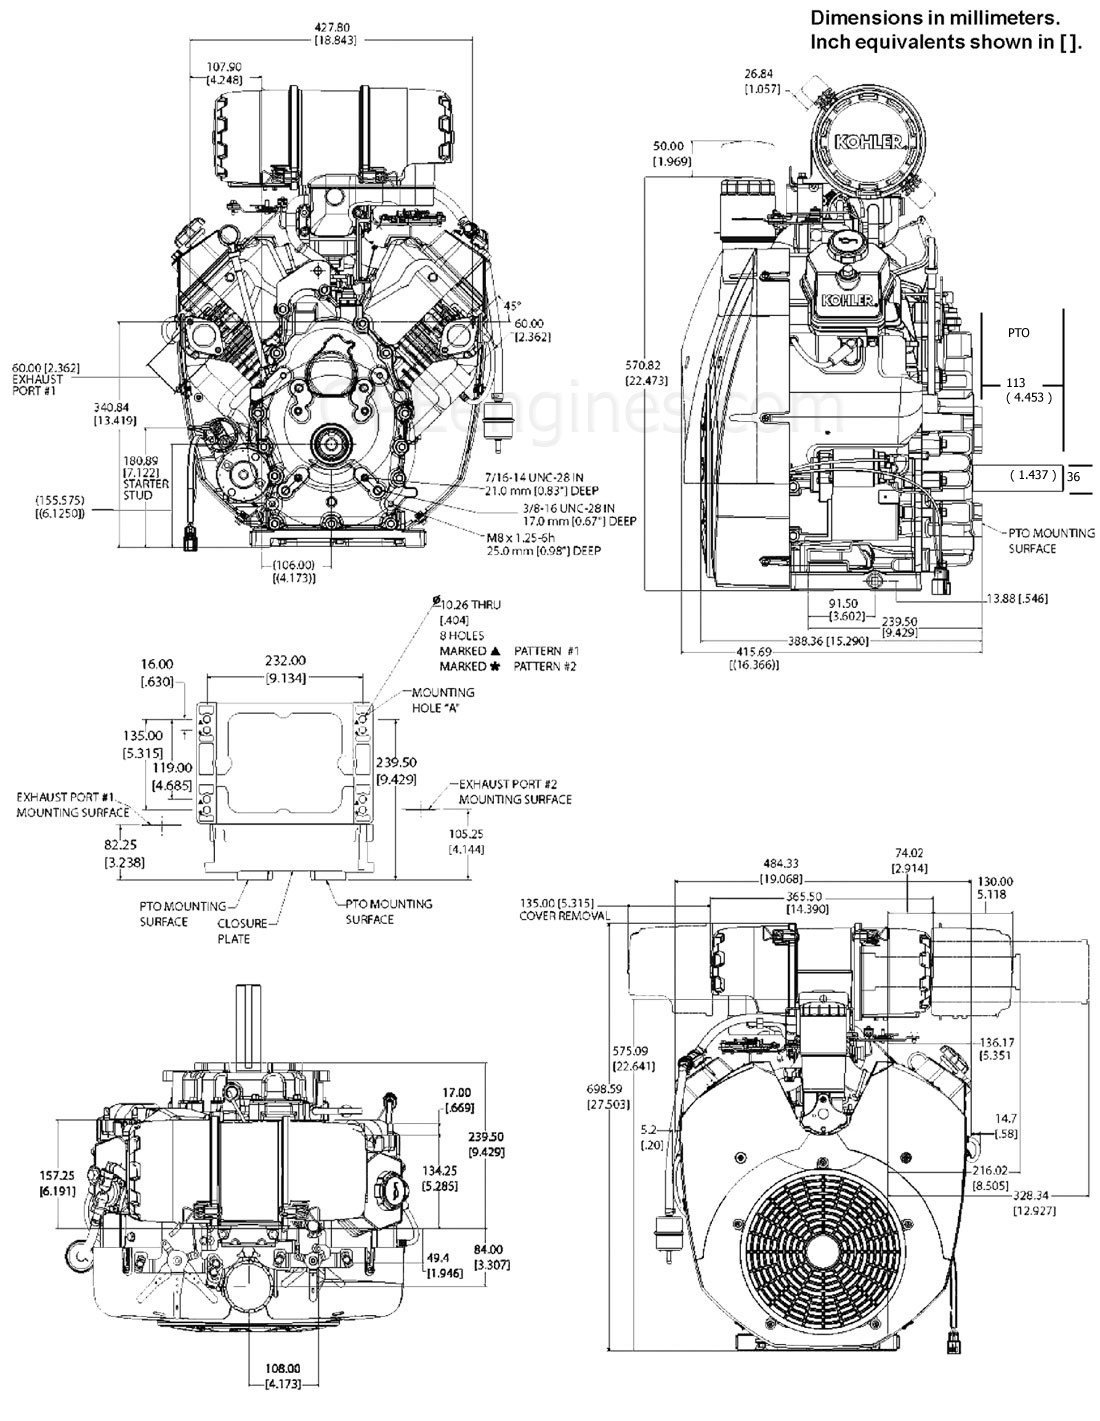 CH980_drawings ch940 ch960 ch980 ch1000 drawings kohler engines and parts store kohler magnum 18 wiring diagram at eliteediting.co